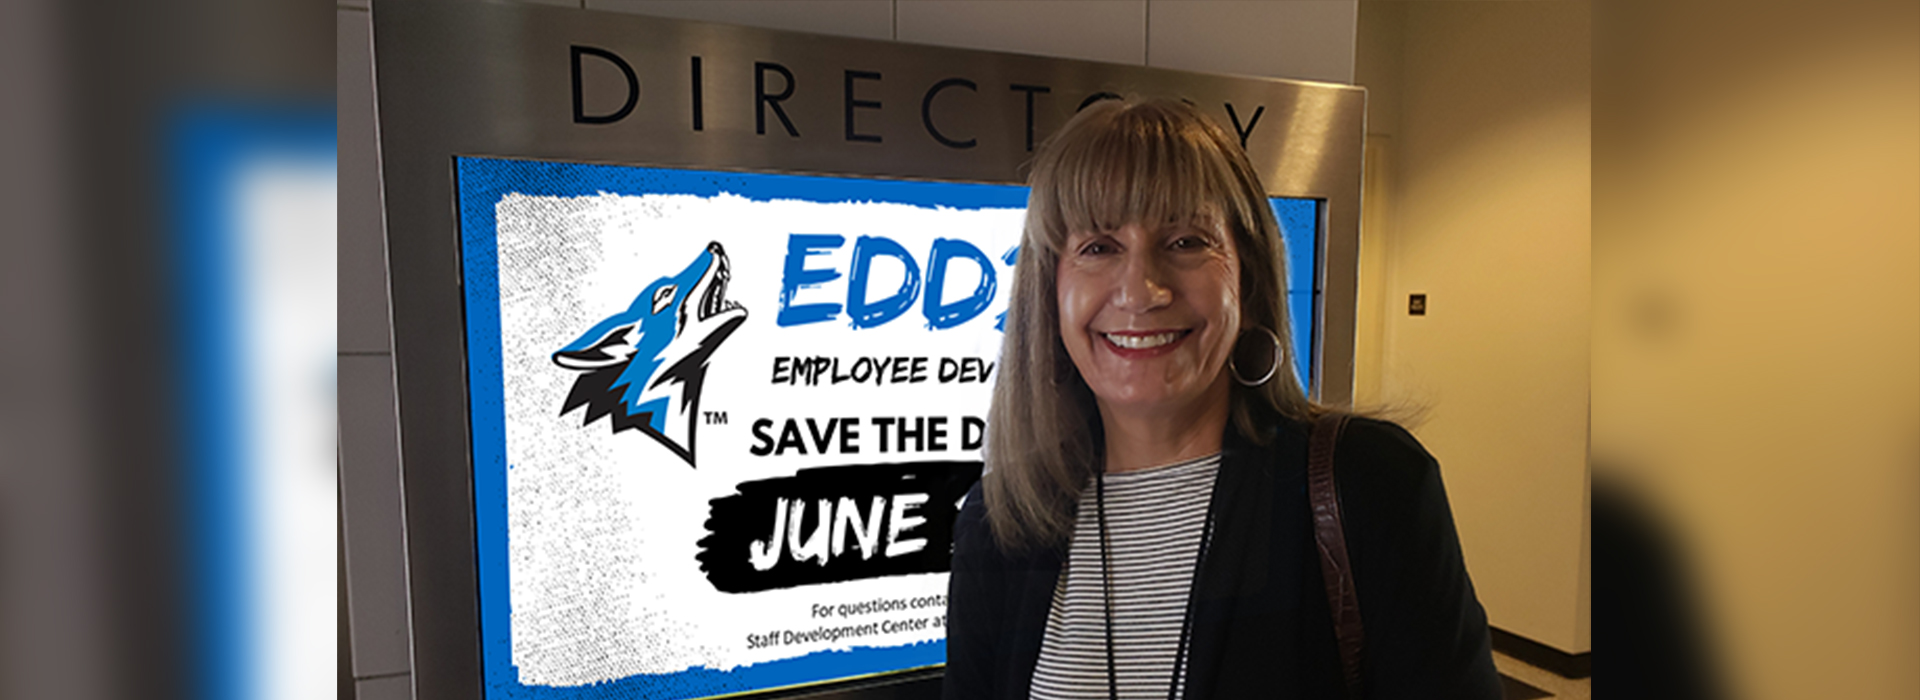 Employee Development Day scheduled for Thursday, June 20